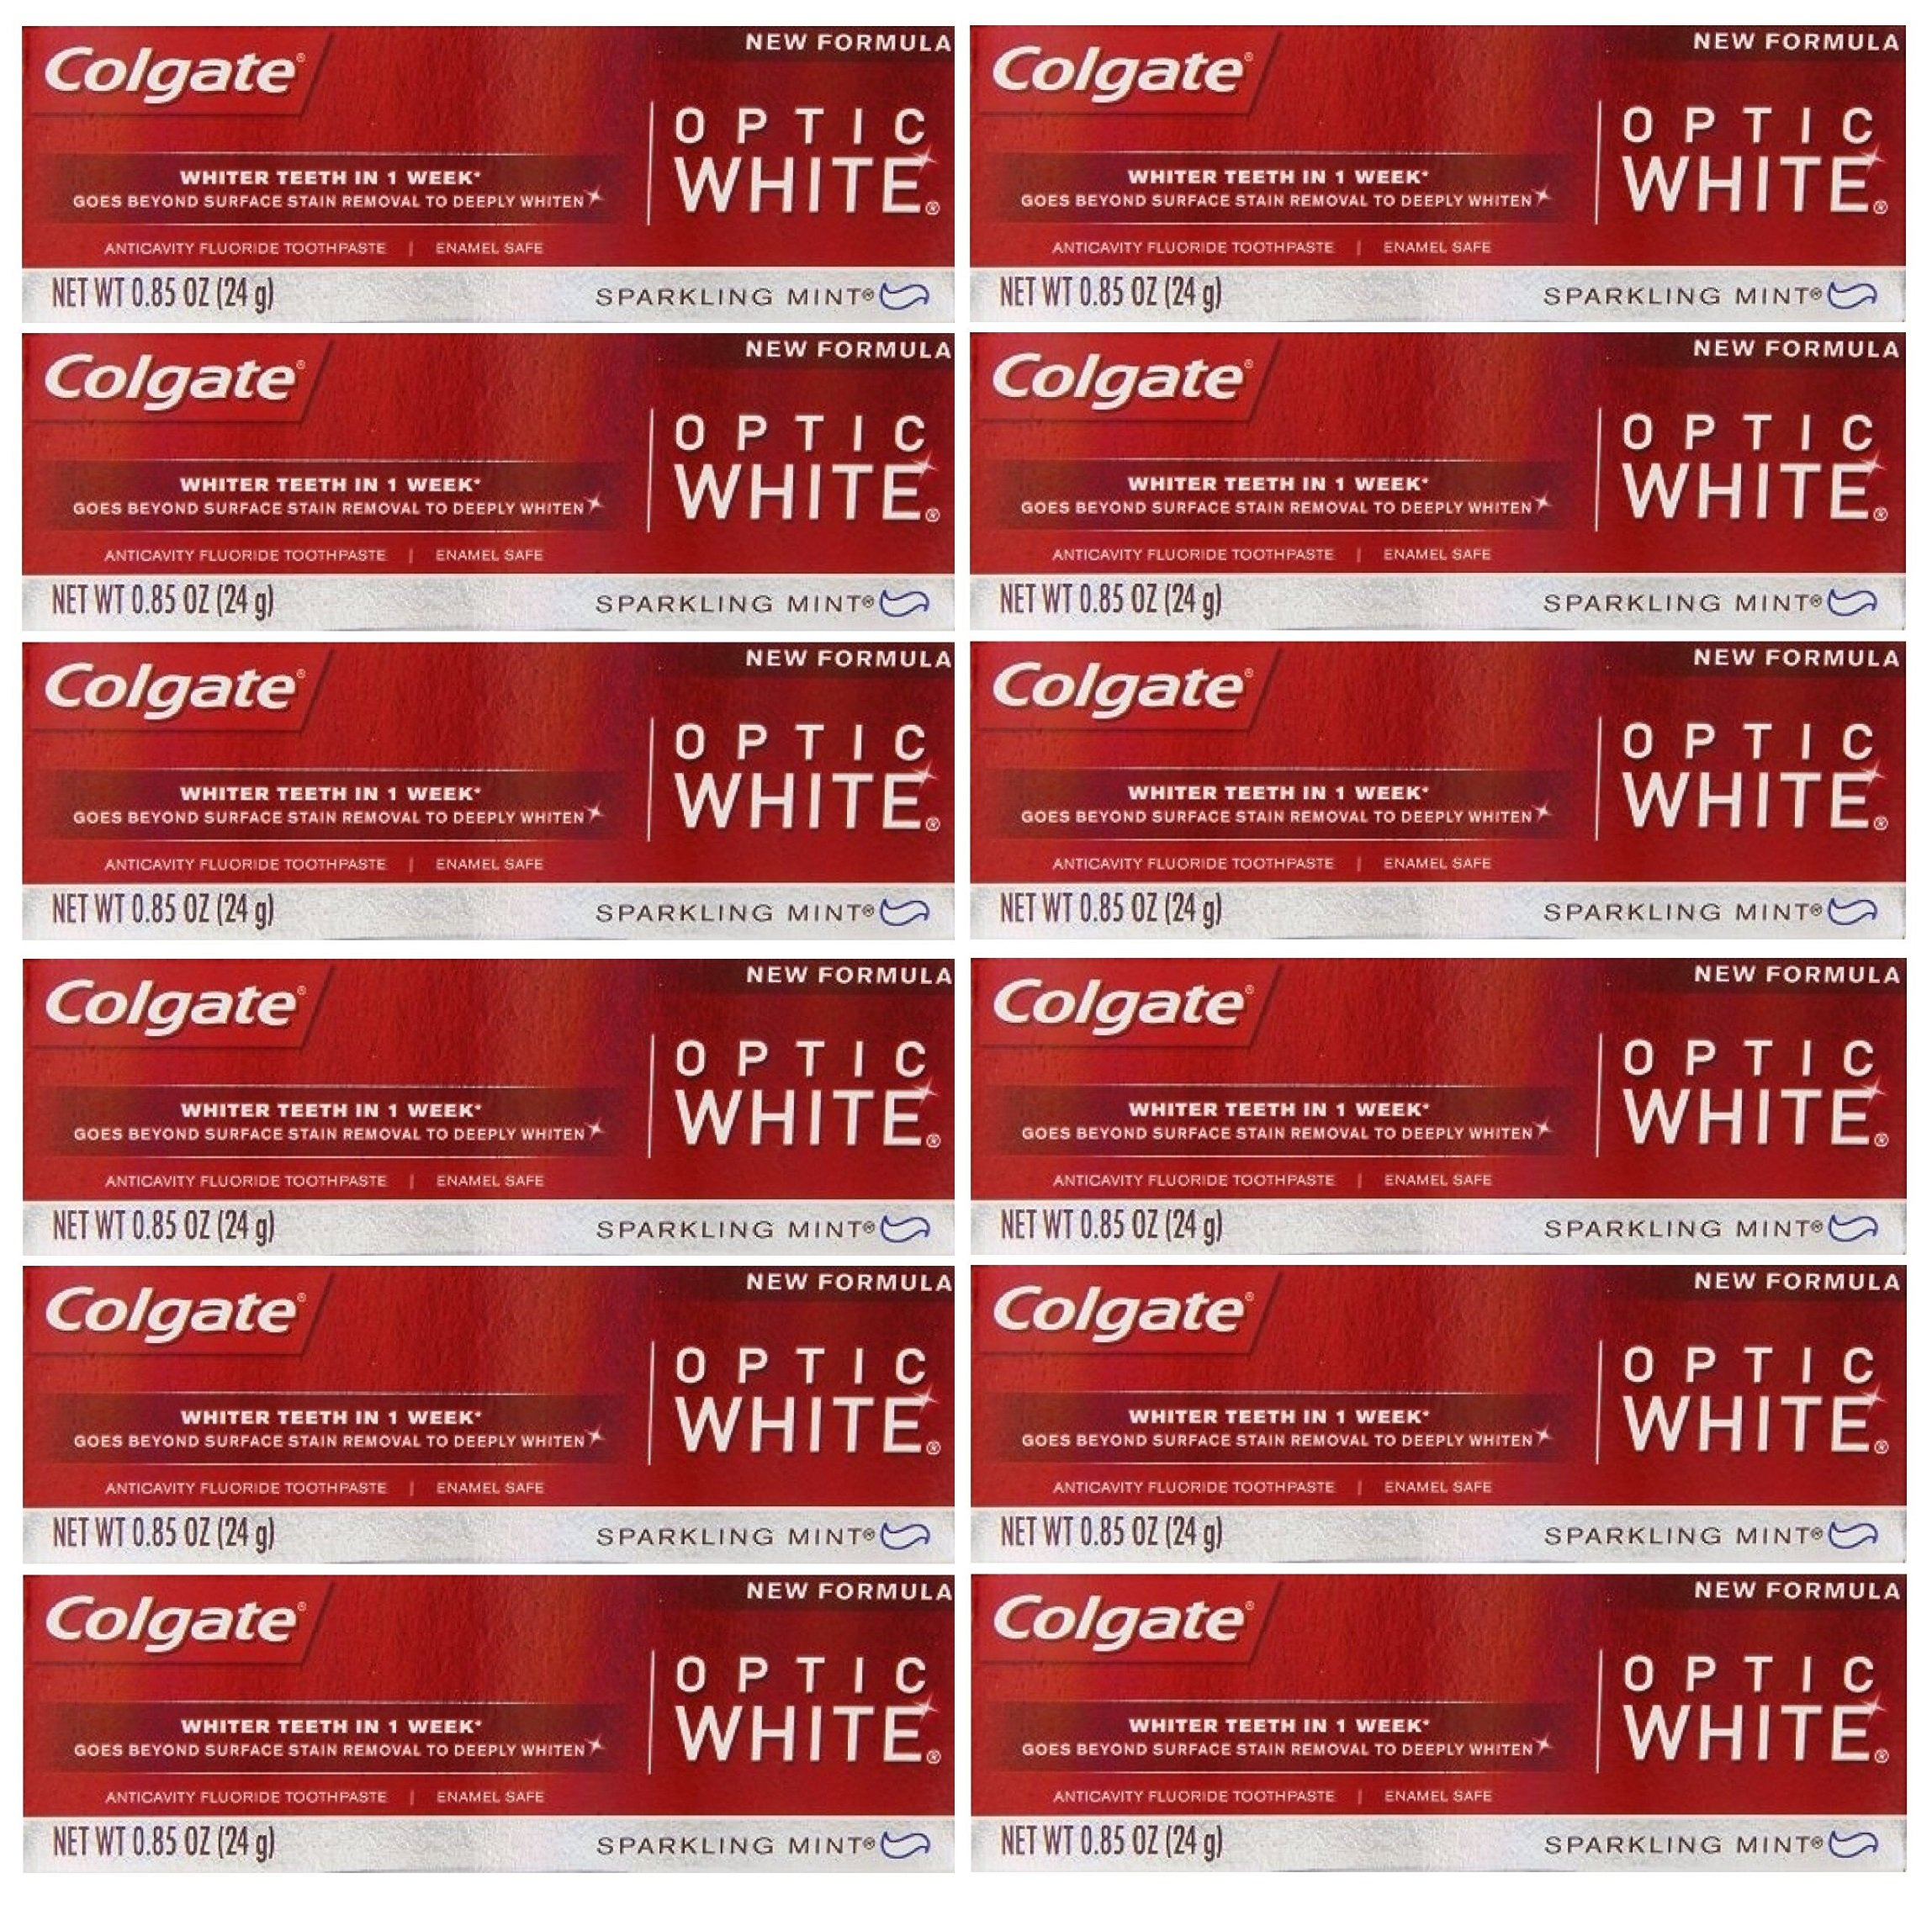 Colgate Optic White Teeth Whitening Toothpaste, Sparkling White, Sparkling Mint, Travel Size 0.85 Ounces - Pack of 12